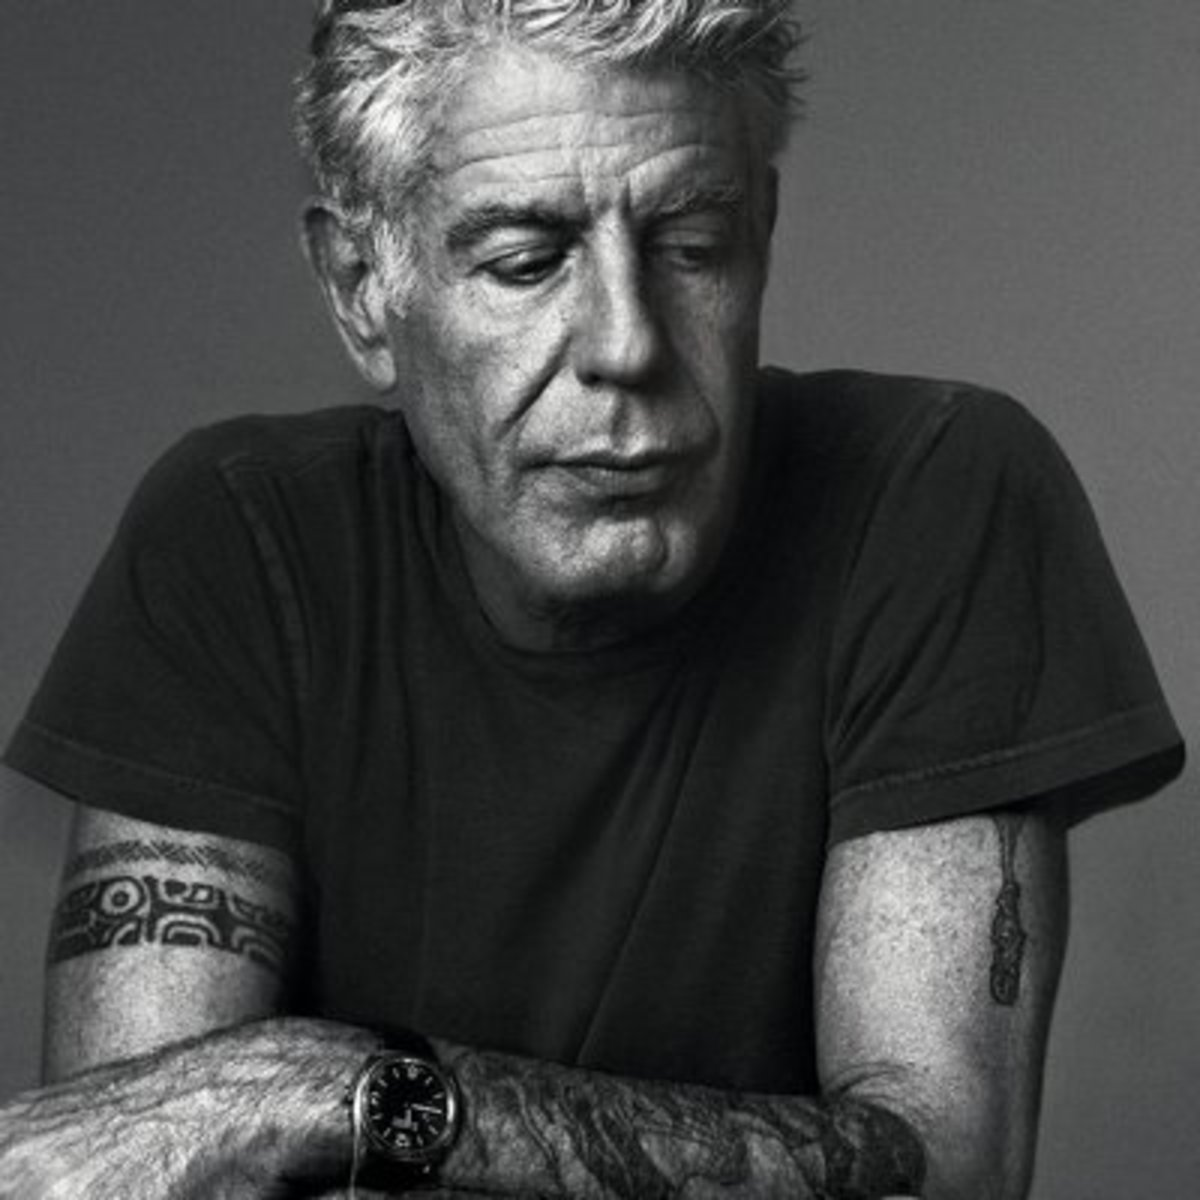 anthony-bourdain-my-uneducated-opinion-about-his-death